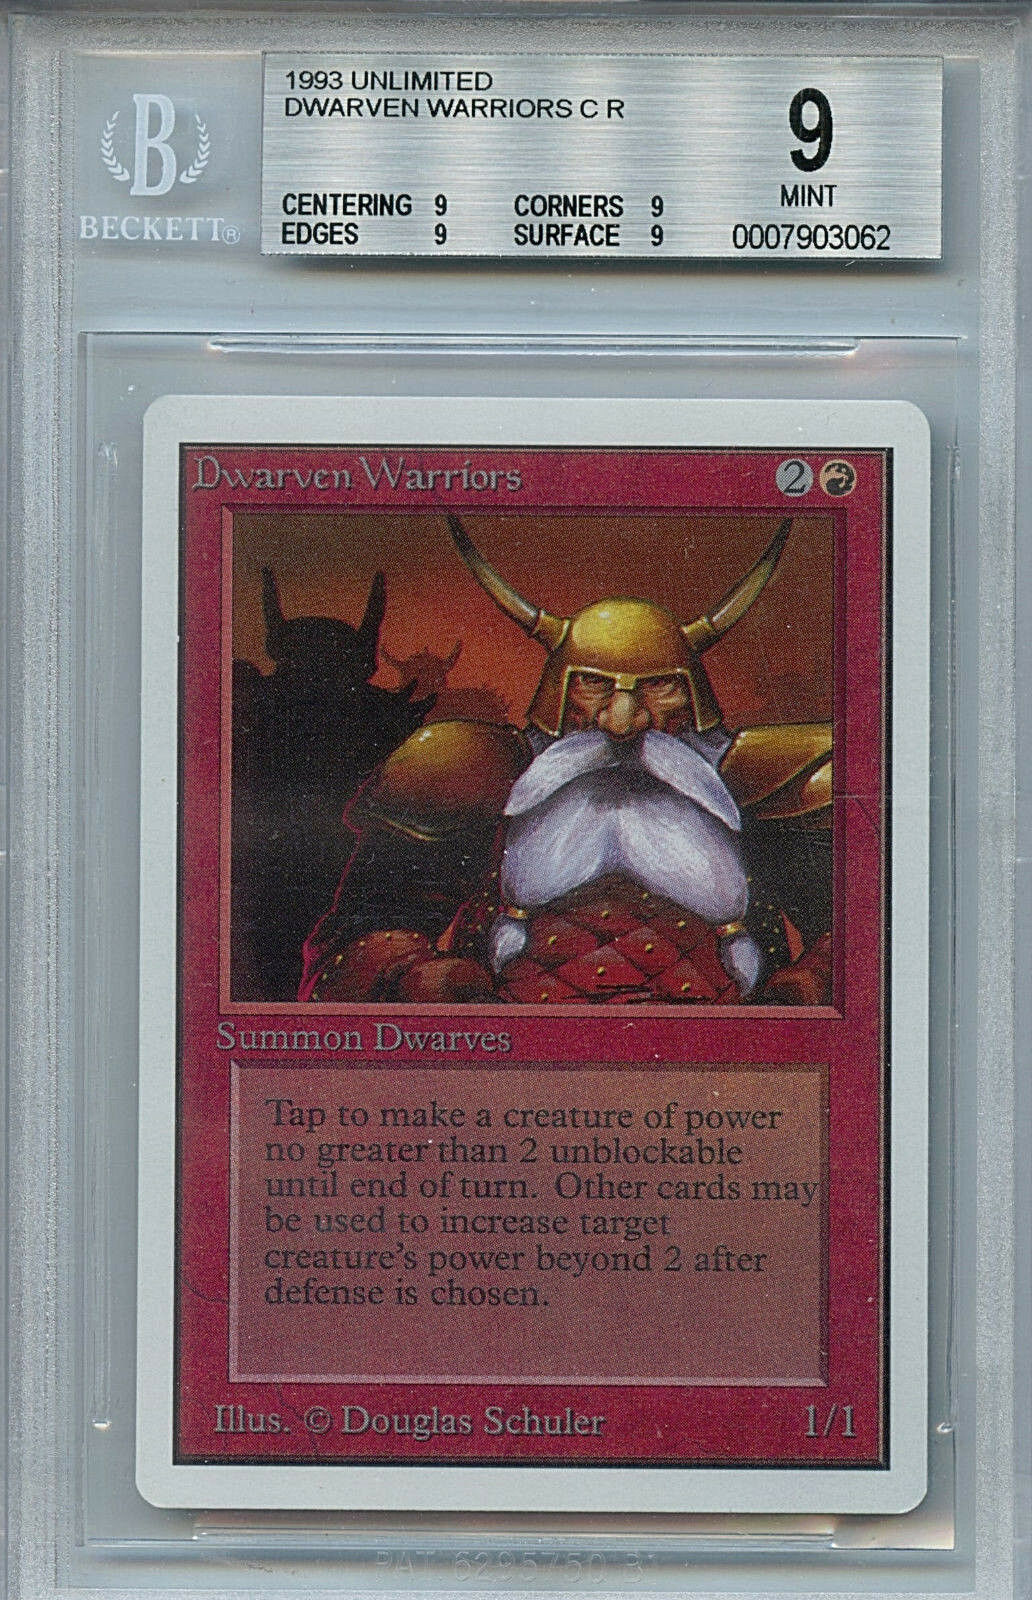 MTG Unlimited Dwarven Warriors BGS 9.0 (9) Mint Card Magic Quad 4 X 9's 3062